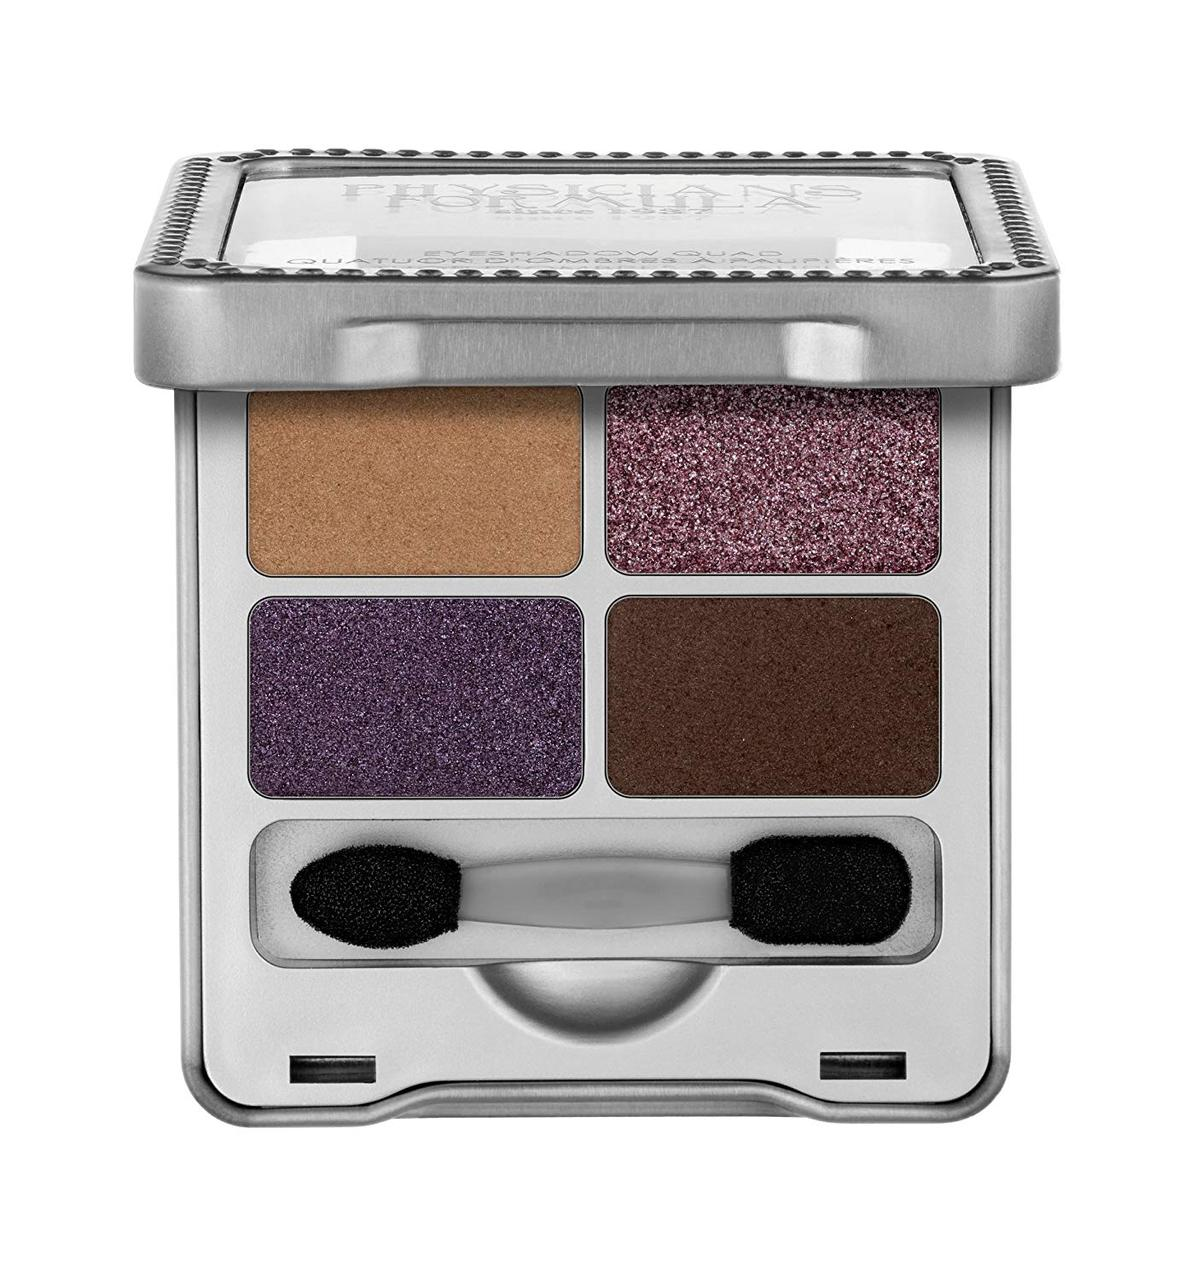 Палетка теней Physicians Formula Eyeshadow Quad Smoky Plums